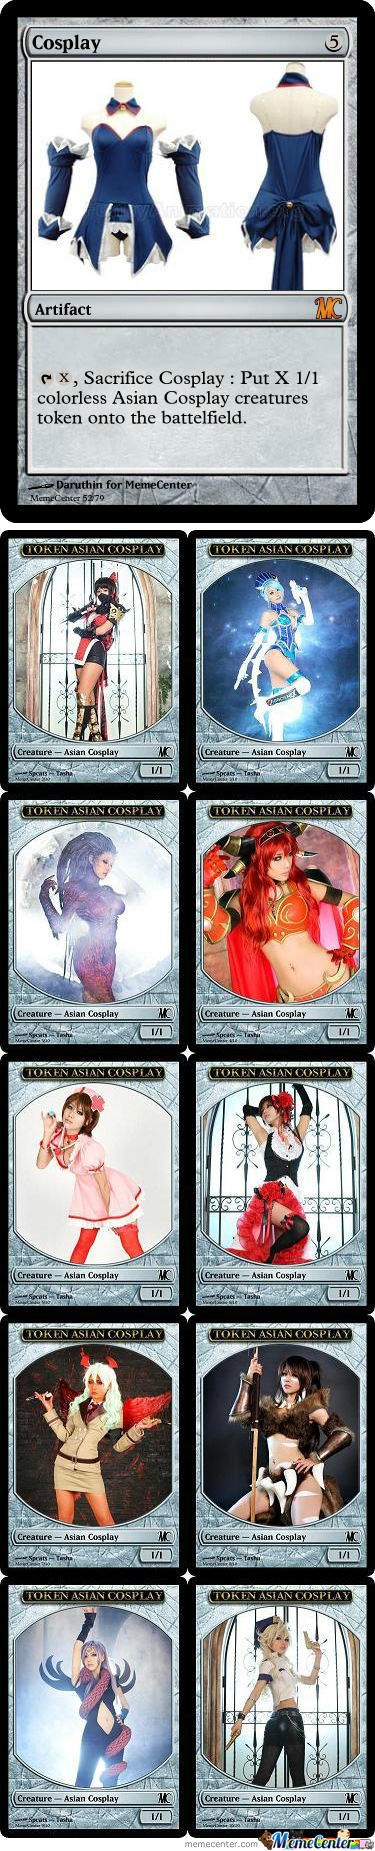 Memecenter The Gathering Card 27 And Tokens